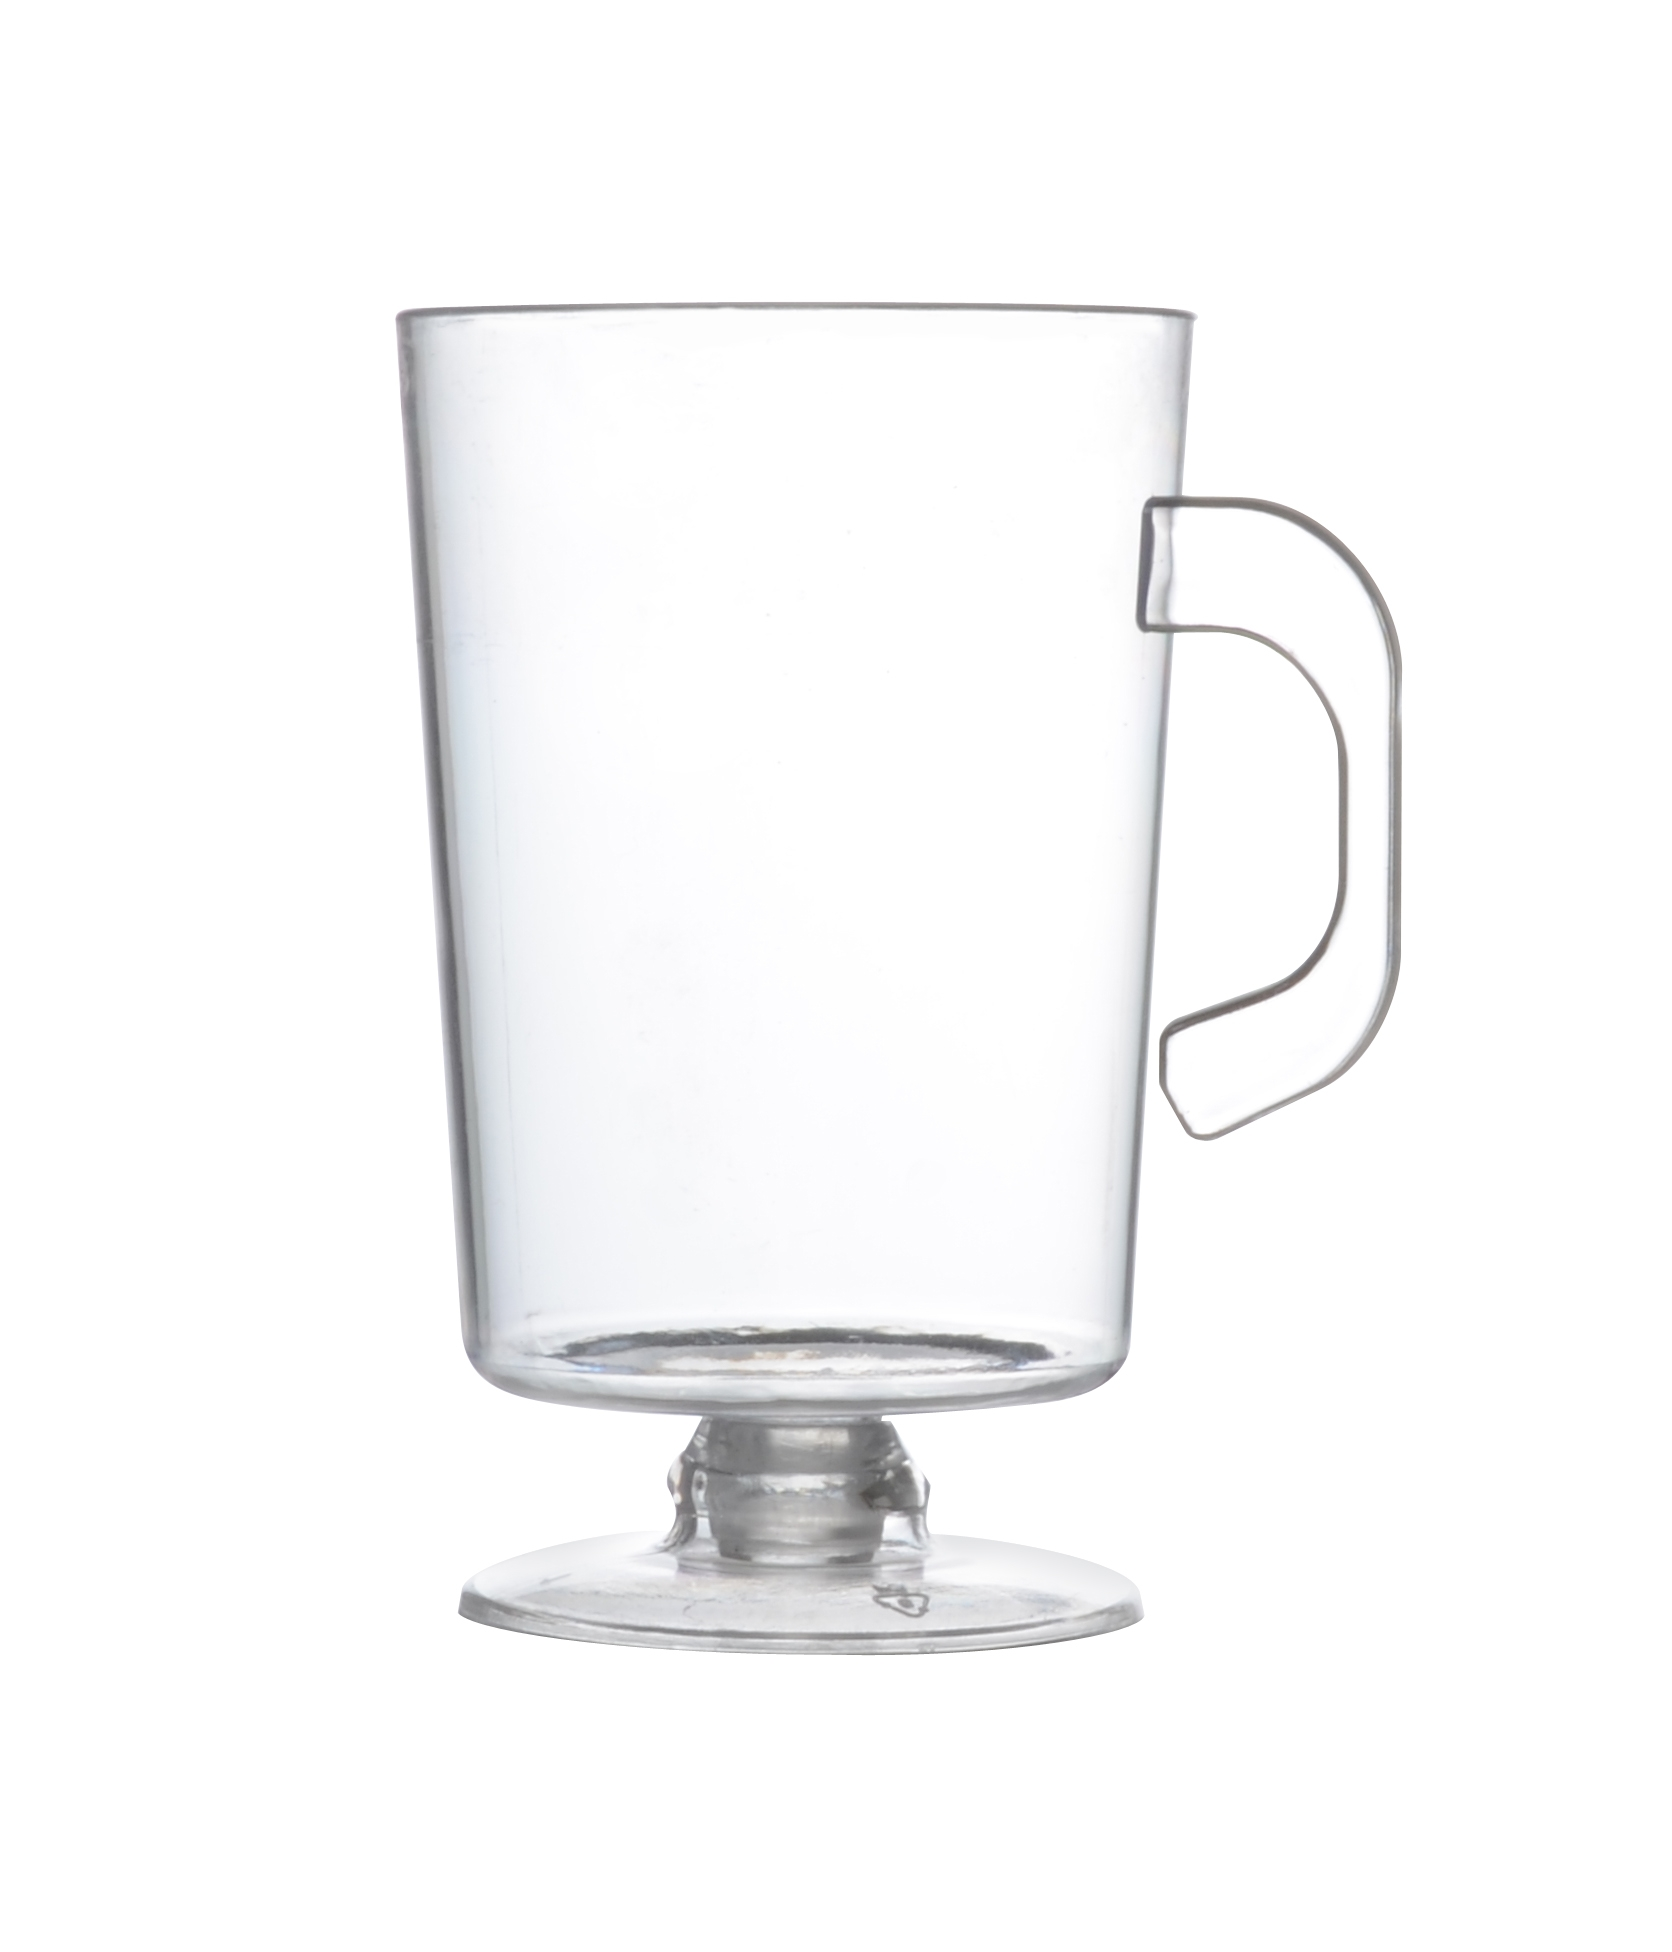 Fineline Settings Clear 2oz Espresso Mug 6416